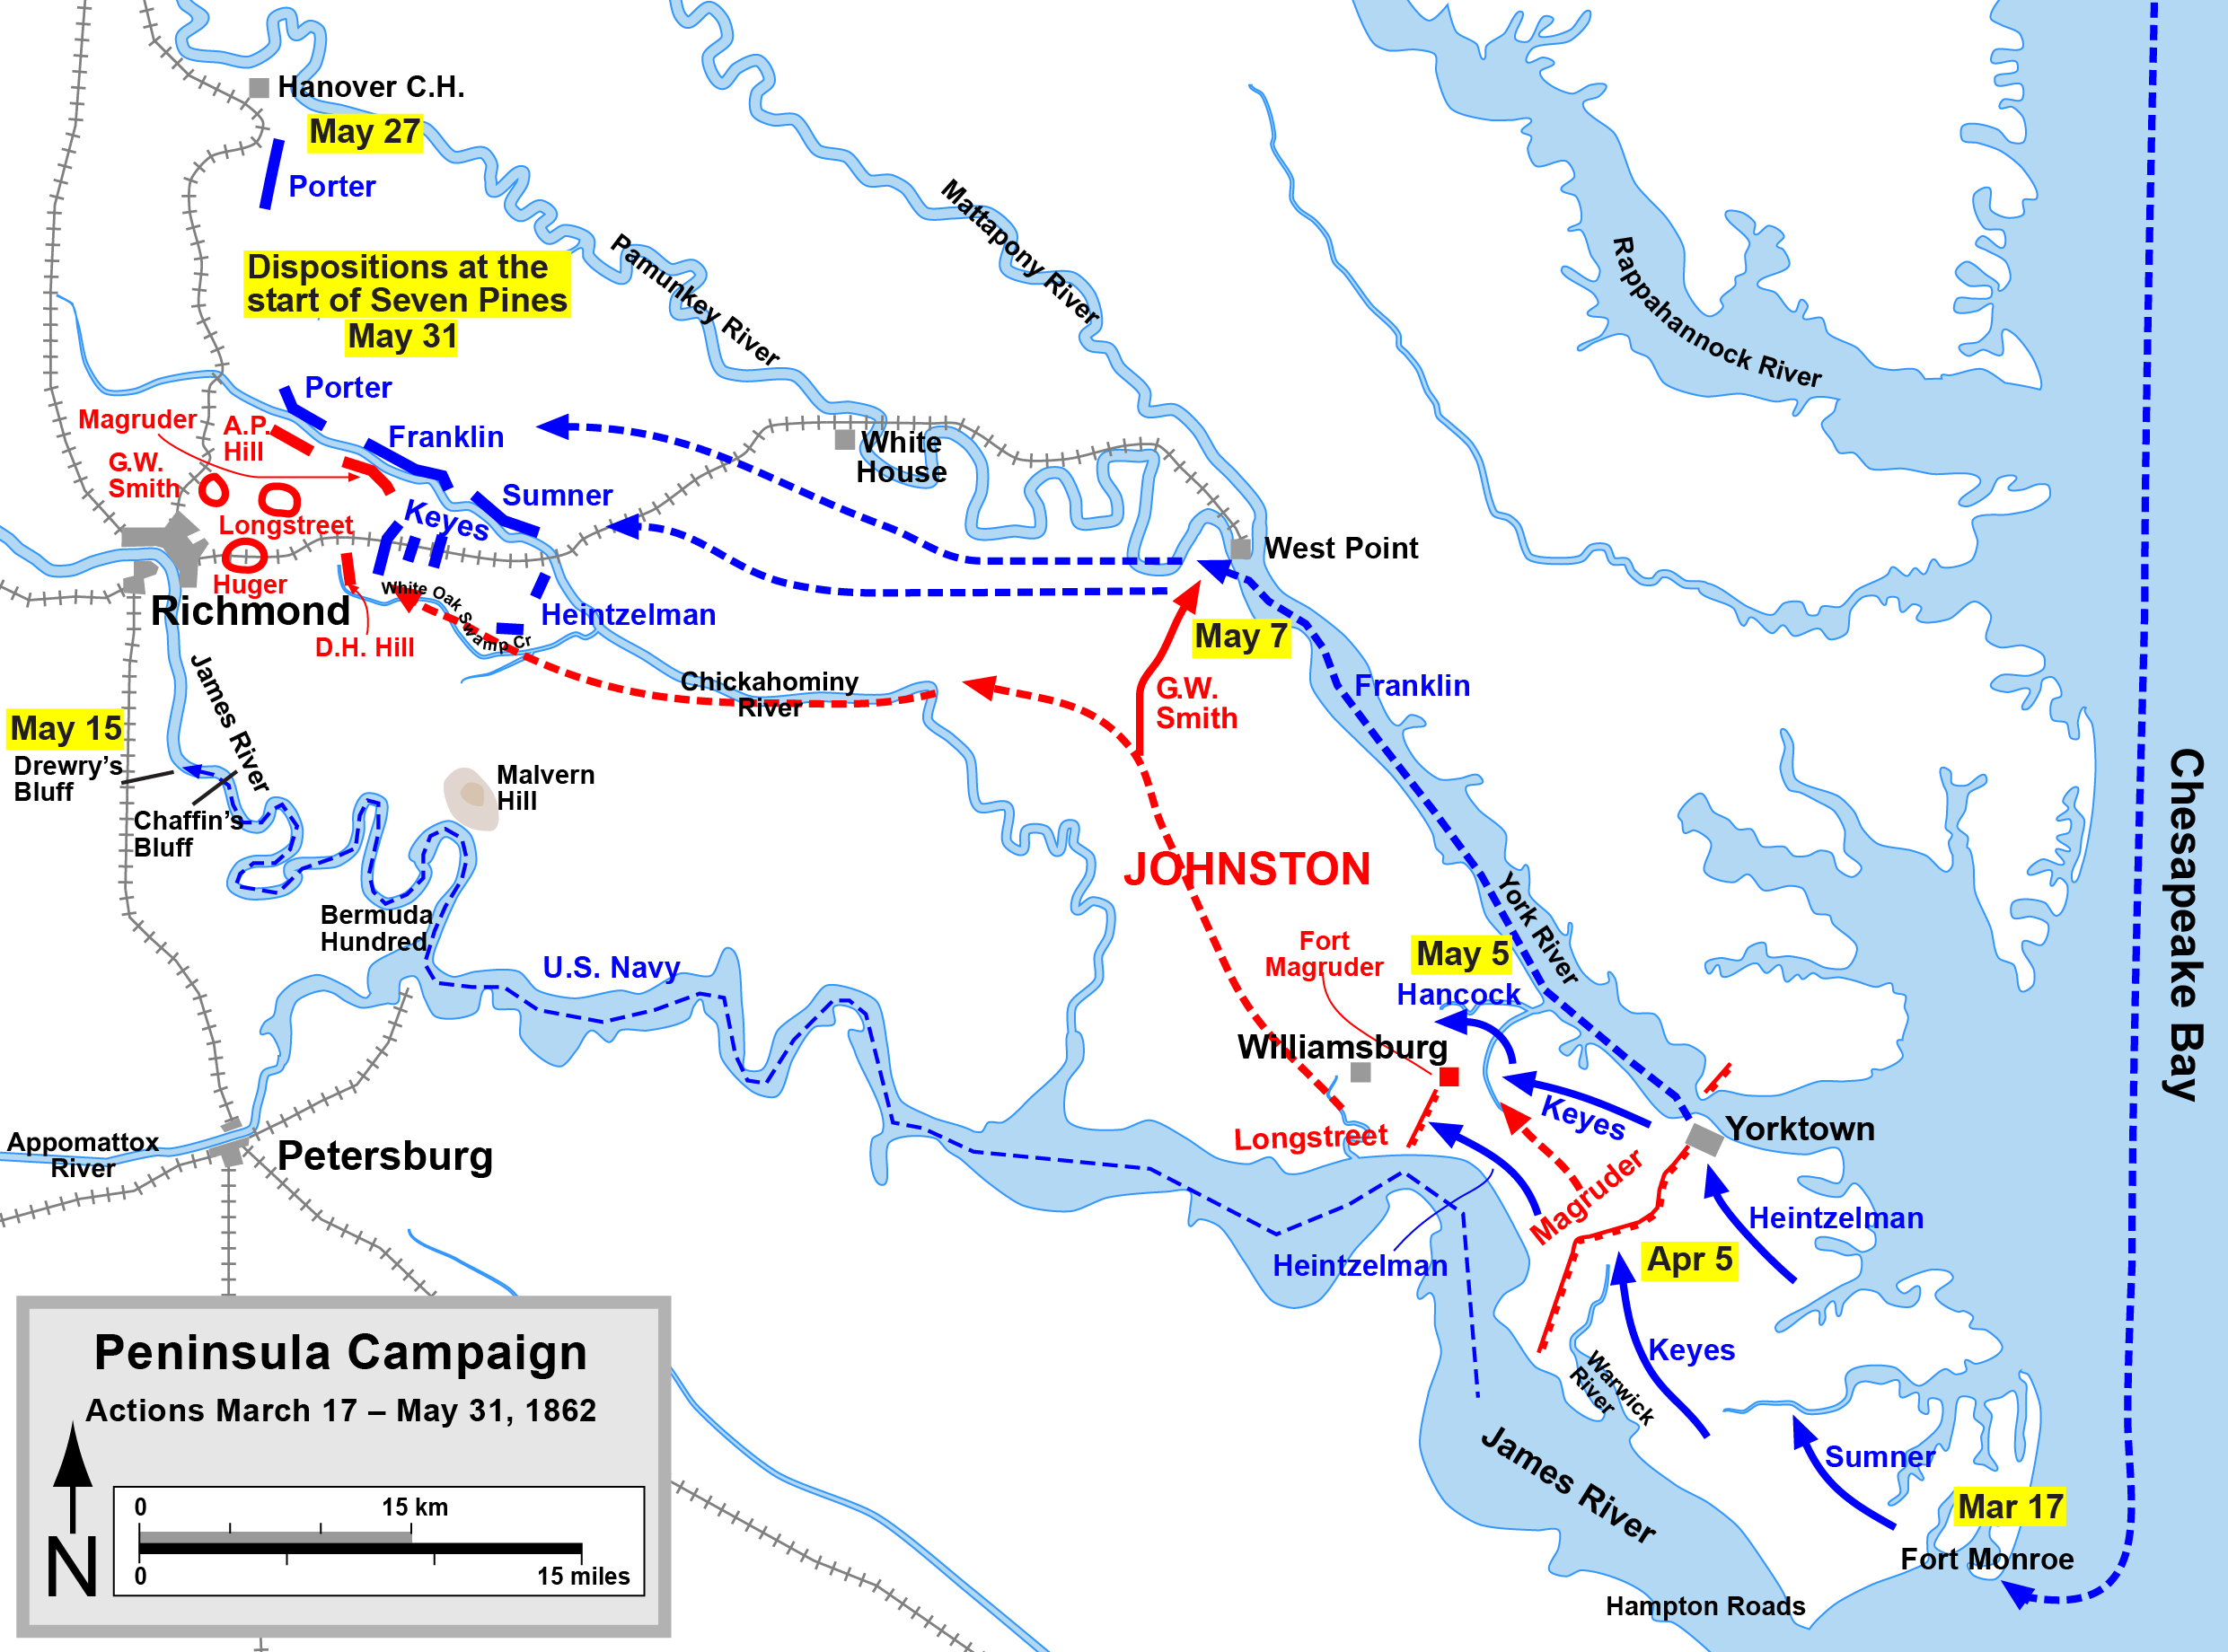 a description of the battle at hampton roads which was part of the peninsula campaign The battle of hampton roads historian page when did the battle occur march 8-9 virginia by way of the peninsula.